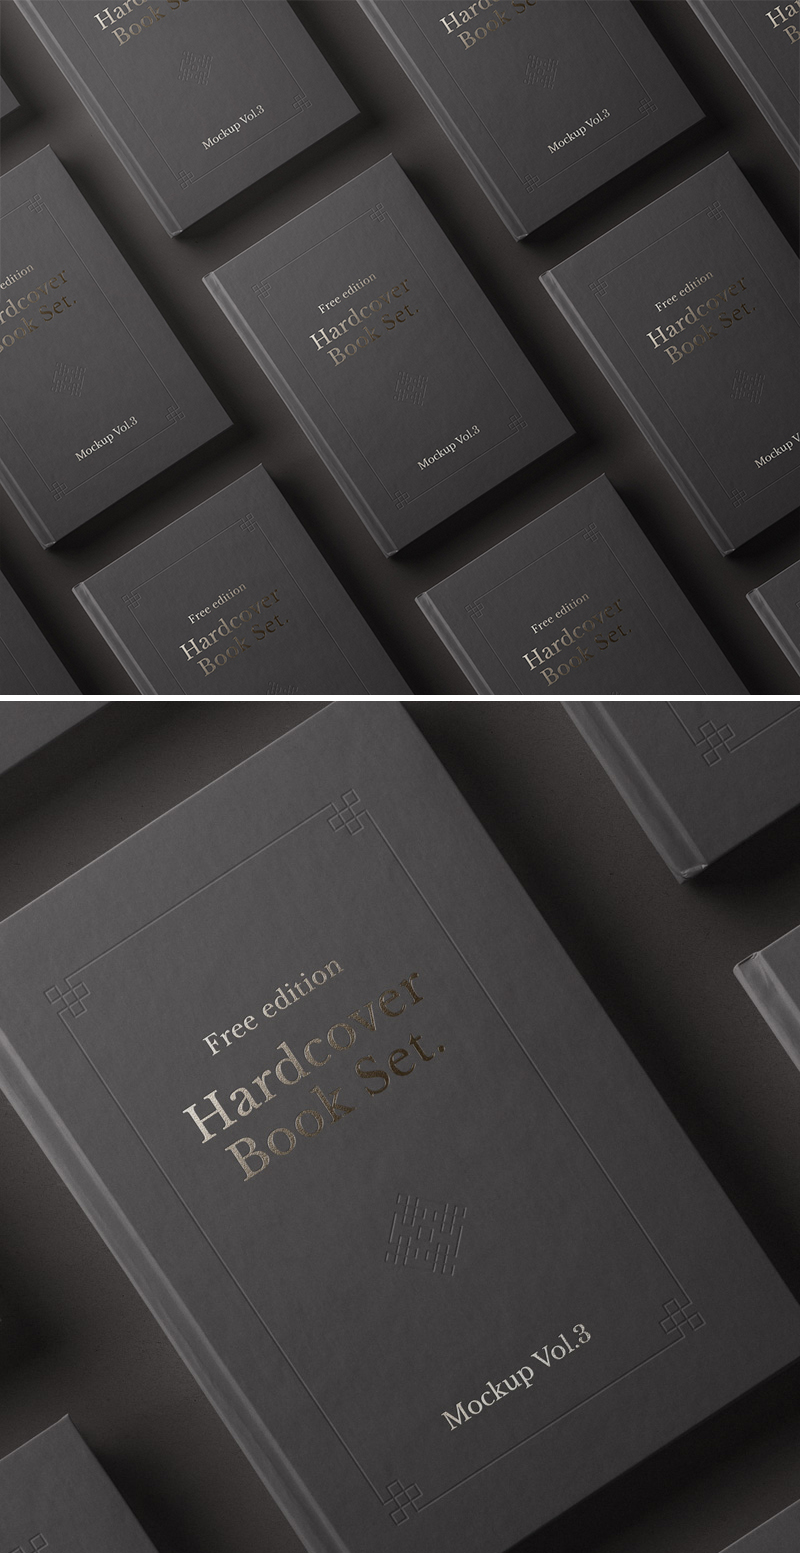 Free-Psd-Book-Mockup-Hardcover